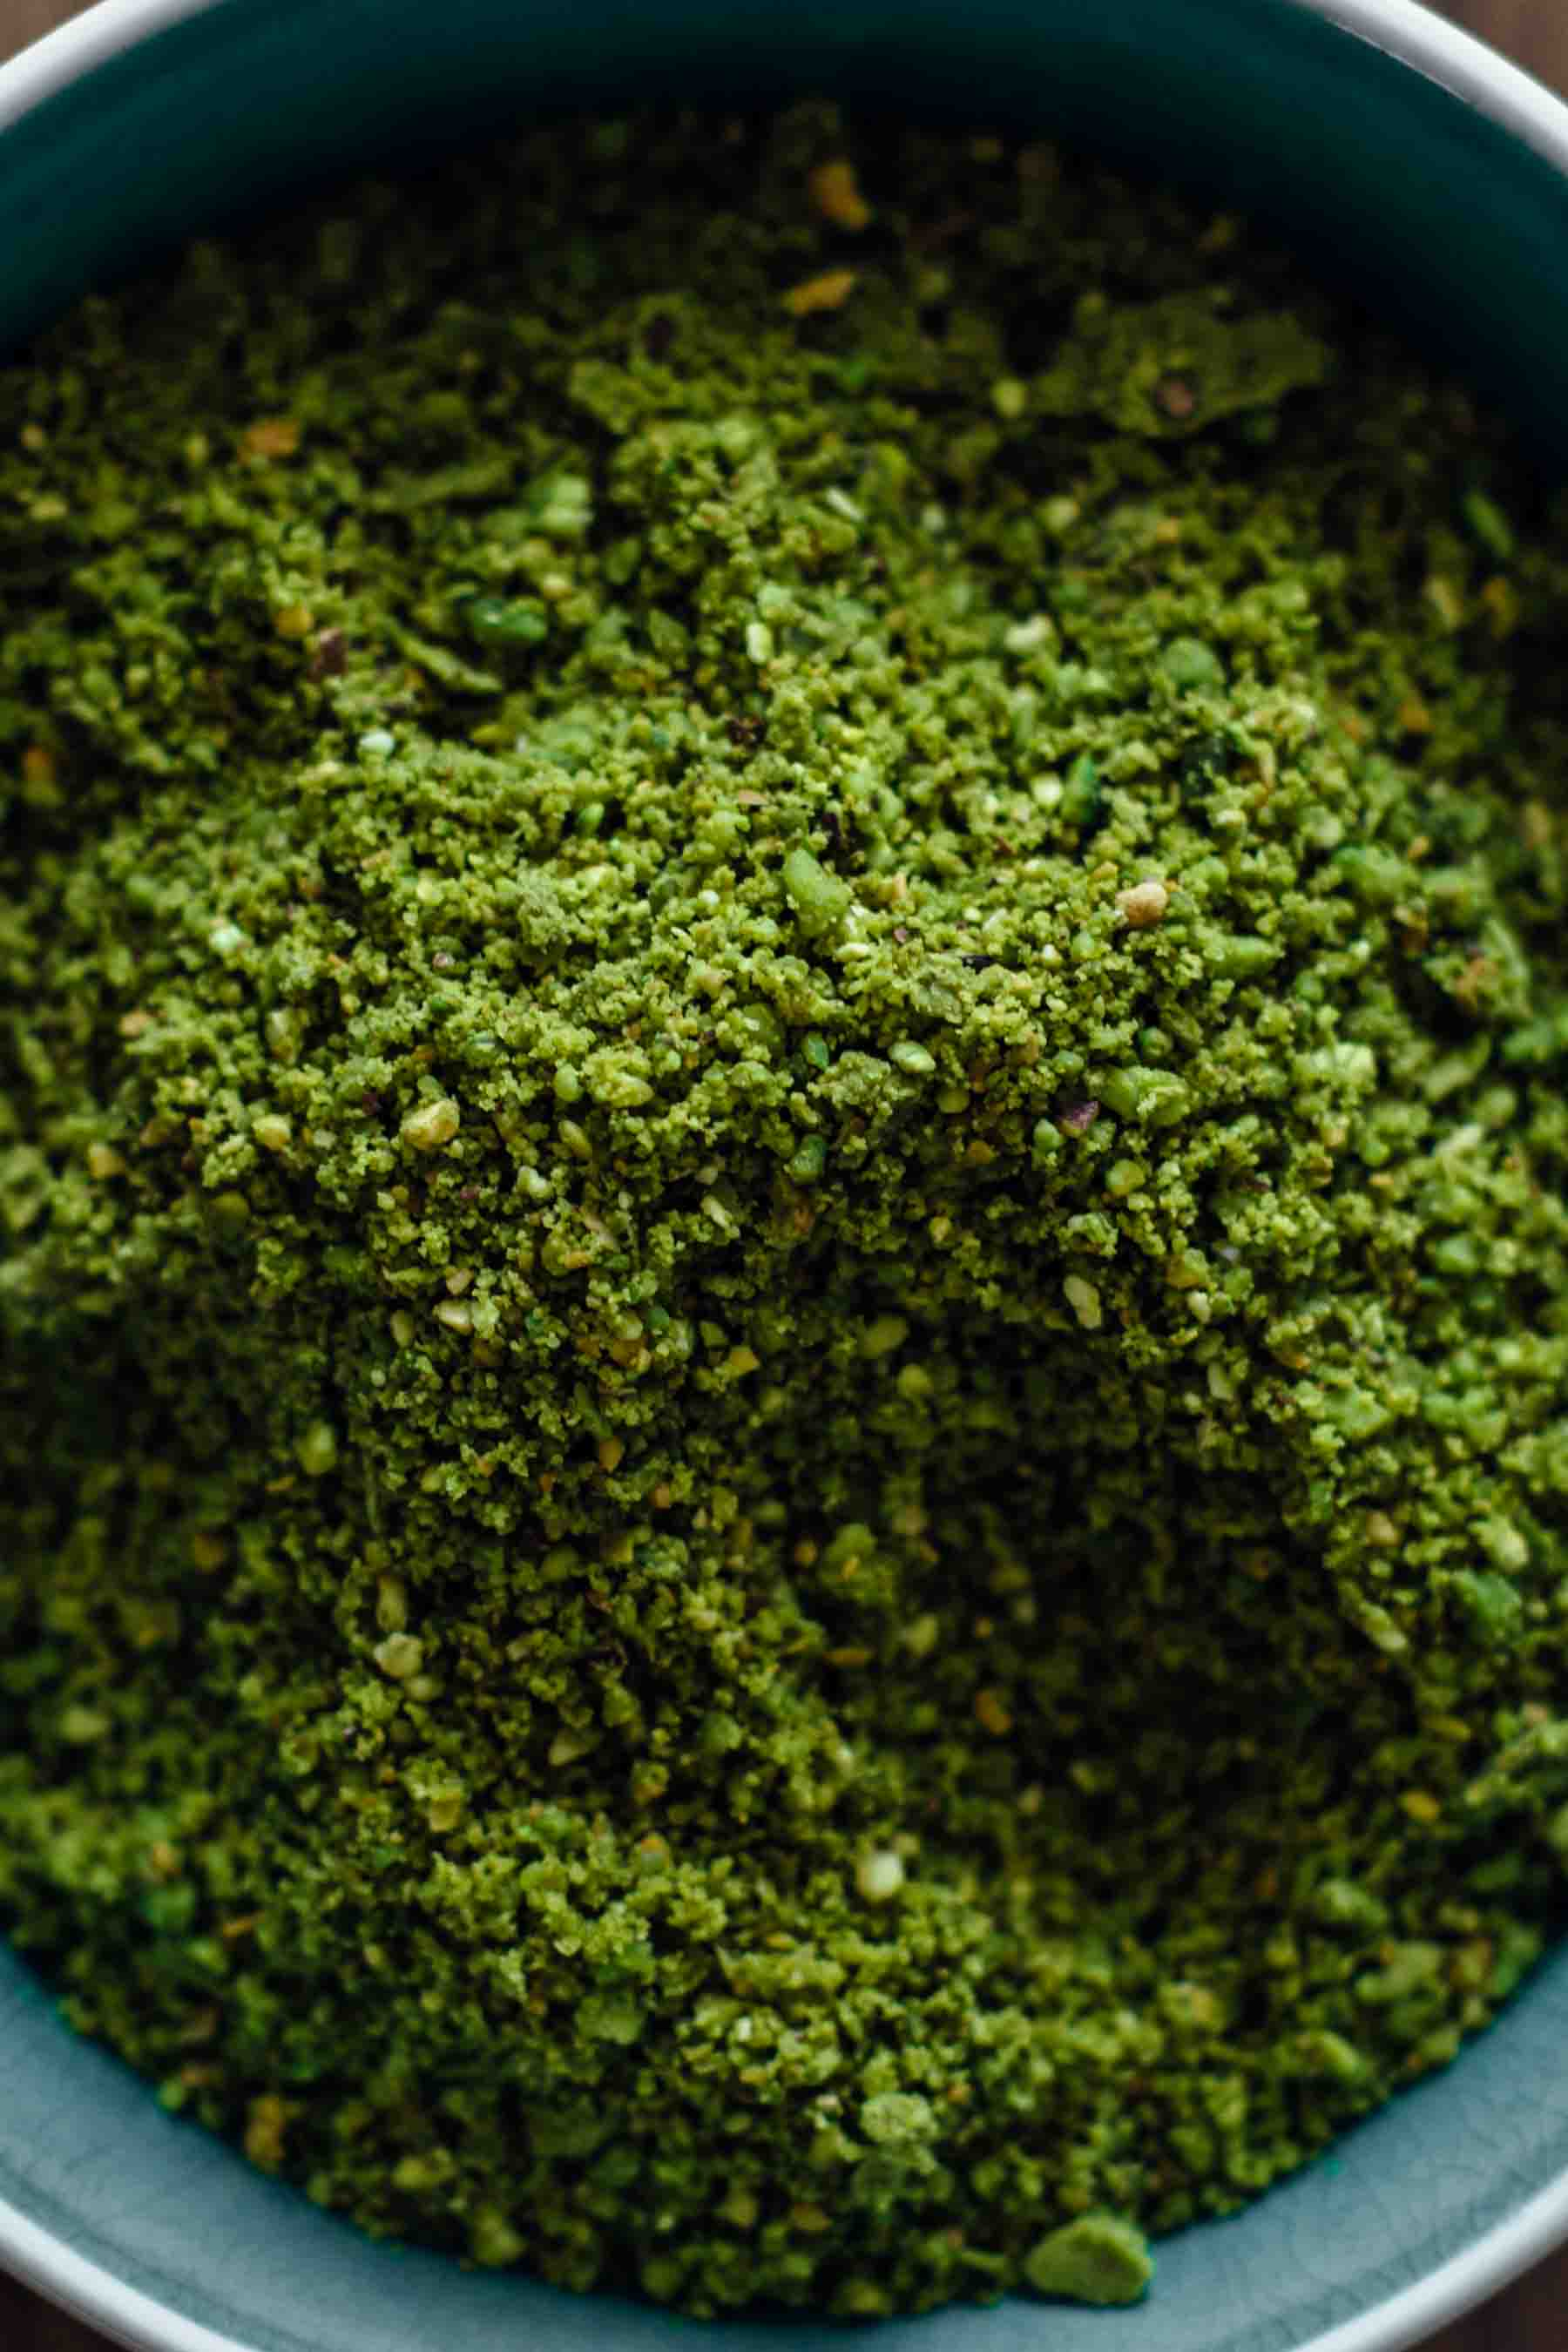 Ground Pistachio for Chocolate Pistachio Cookies Recipe